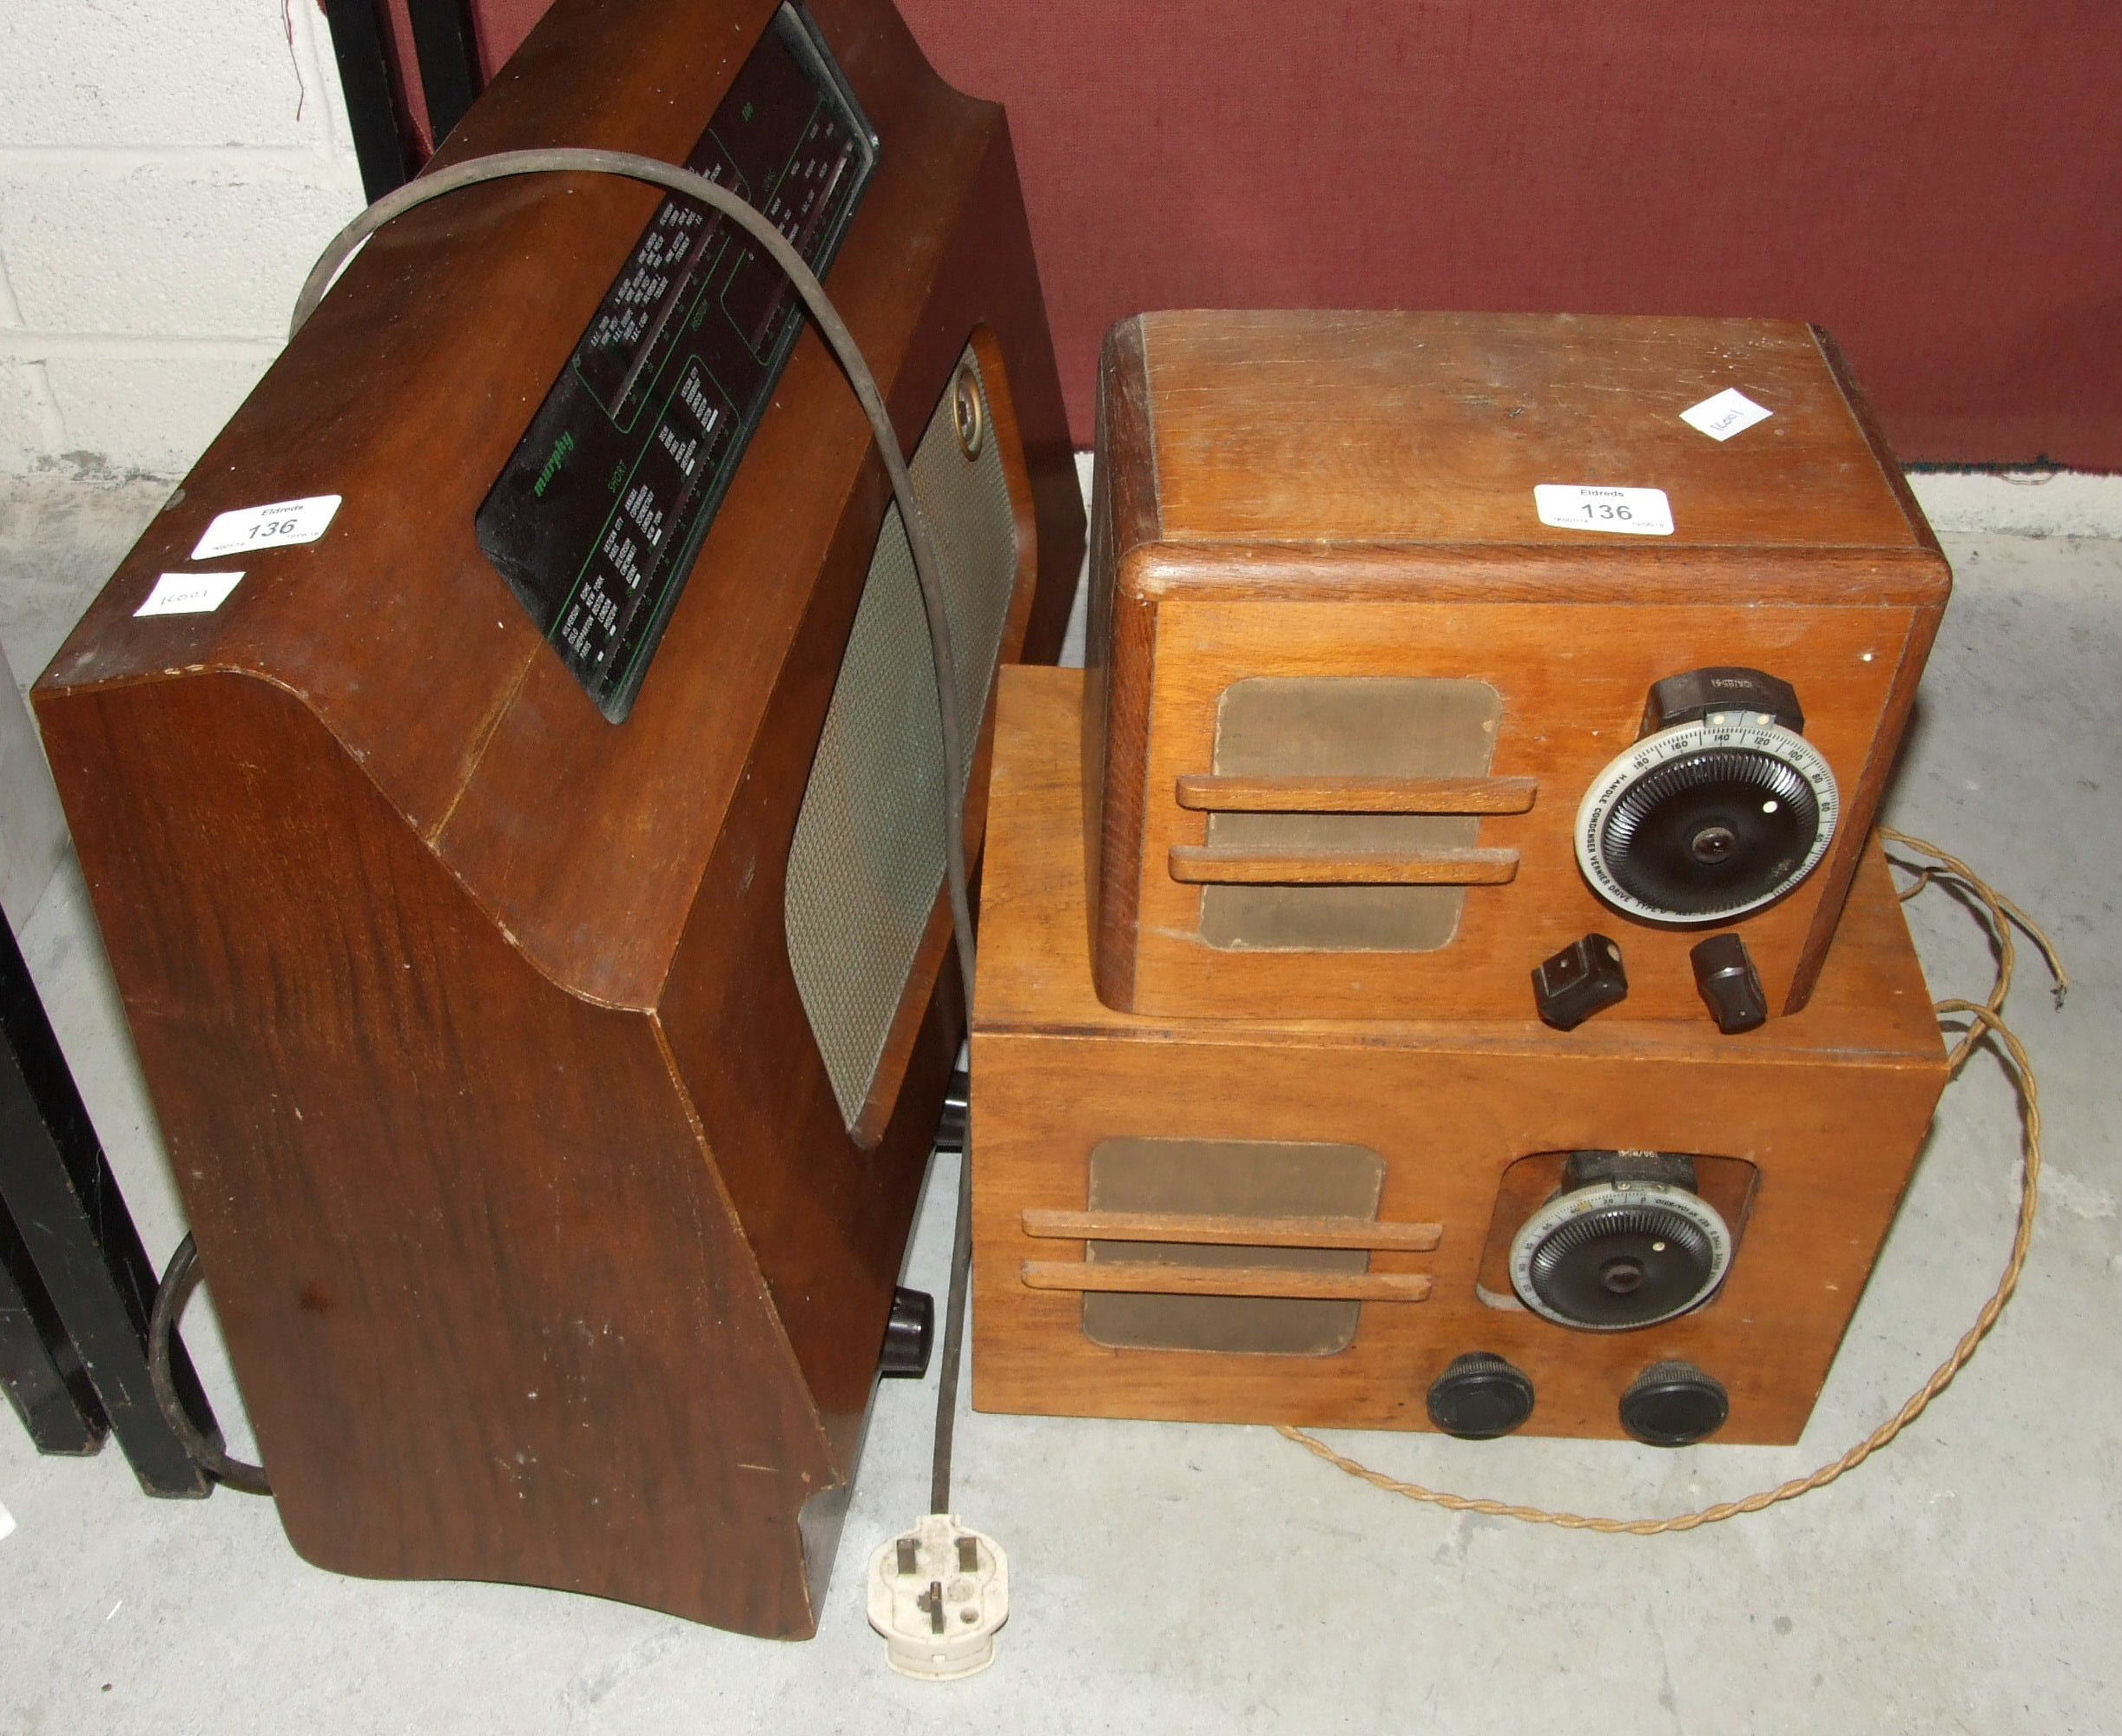 Lot 136 - A Seidel & Naumann 'Erika' typewriter in case, a Murphy 186 wooden-cased radio and two other valve